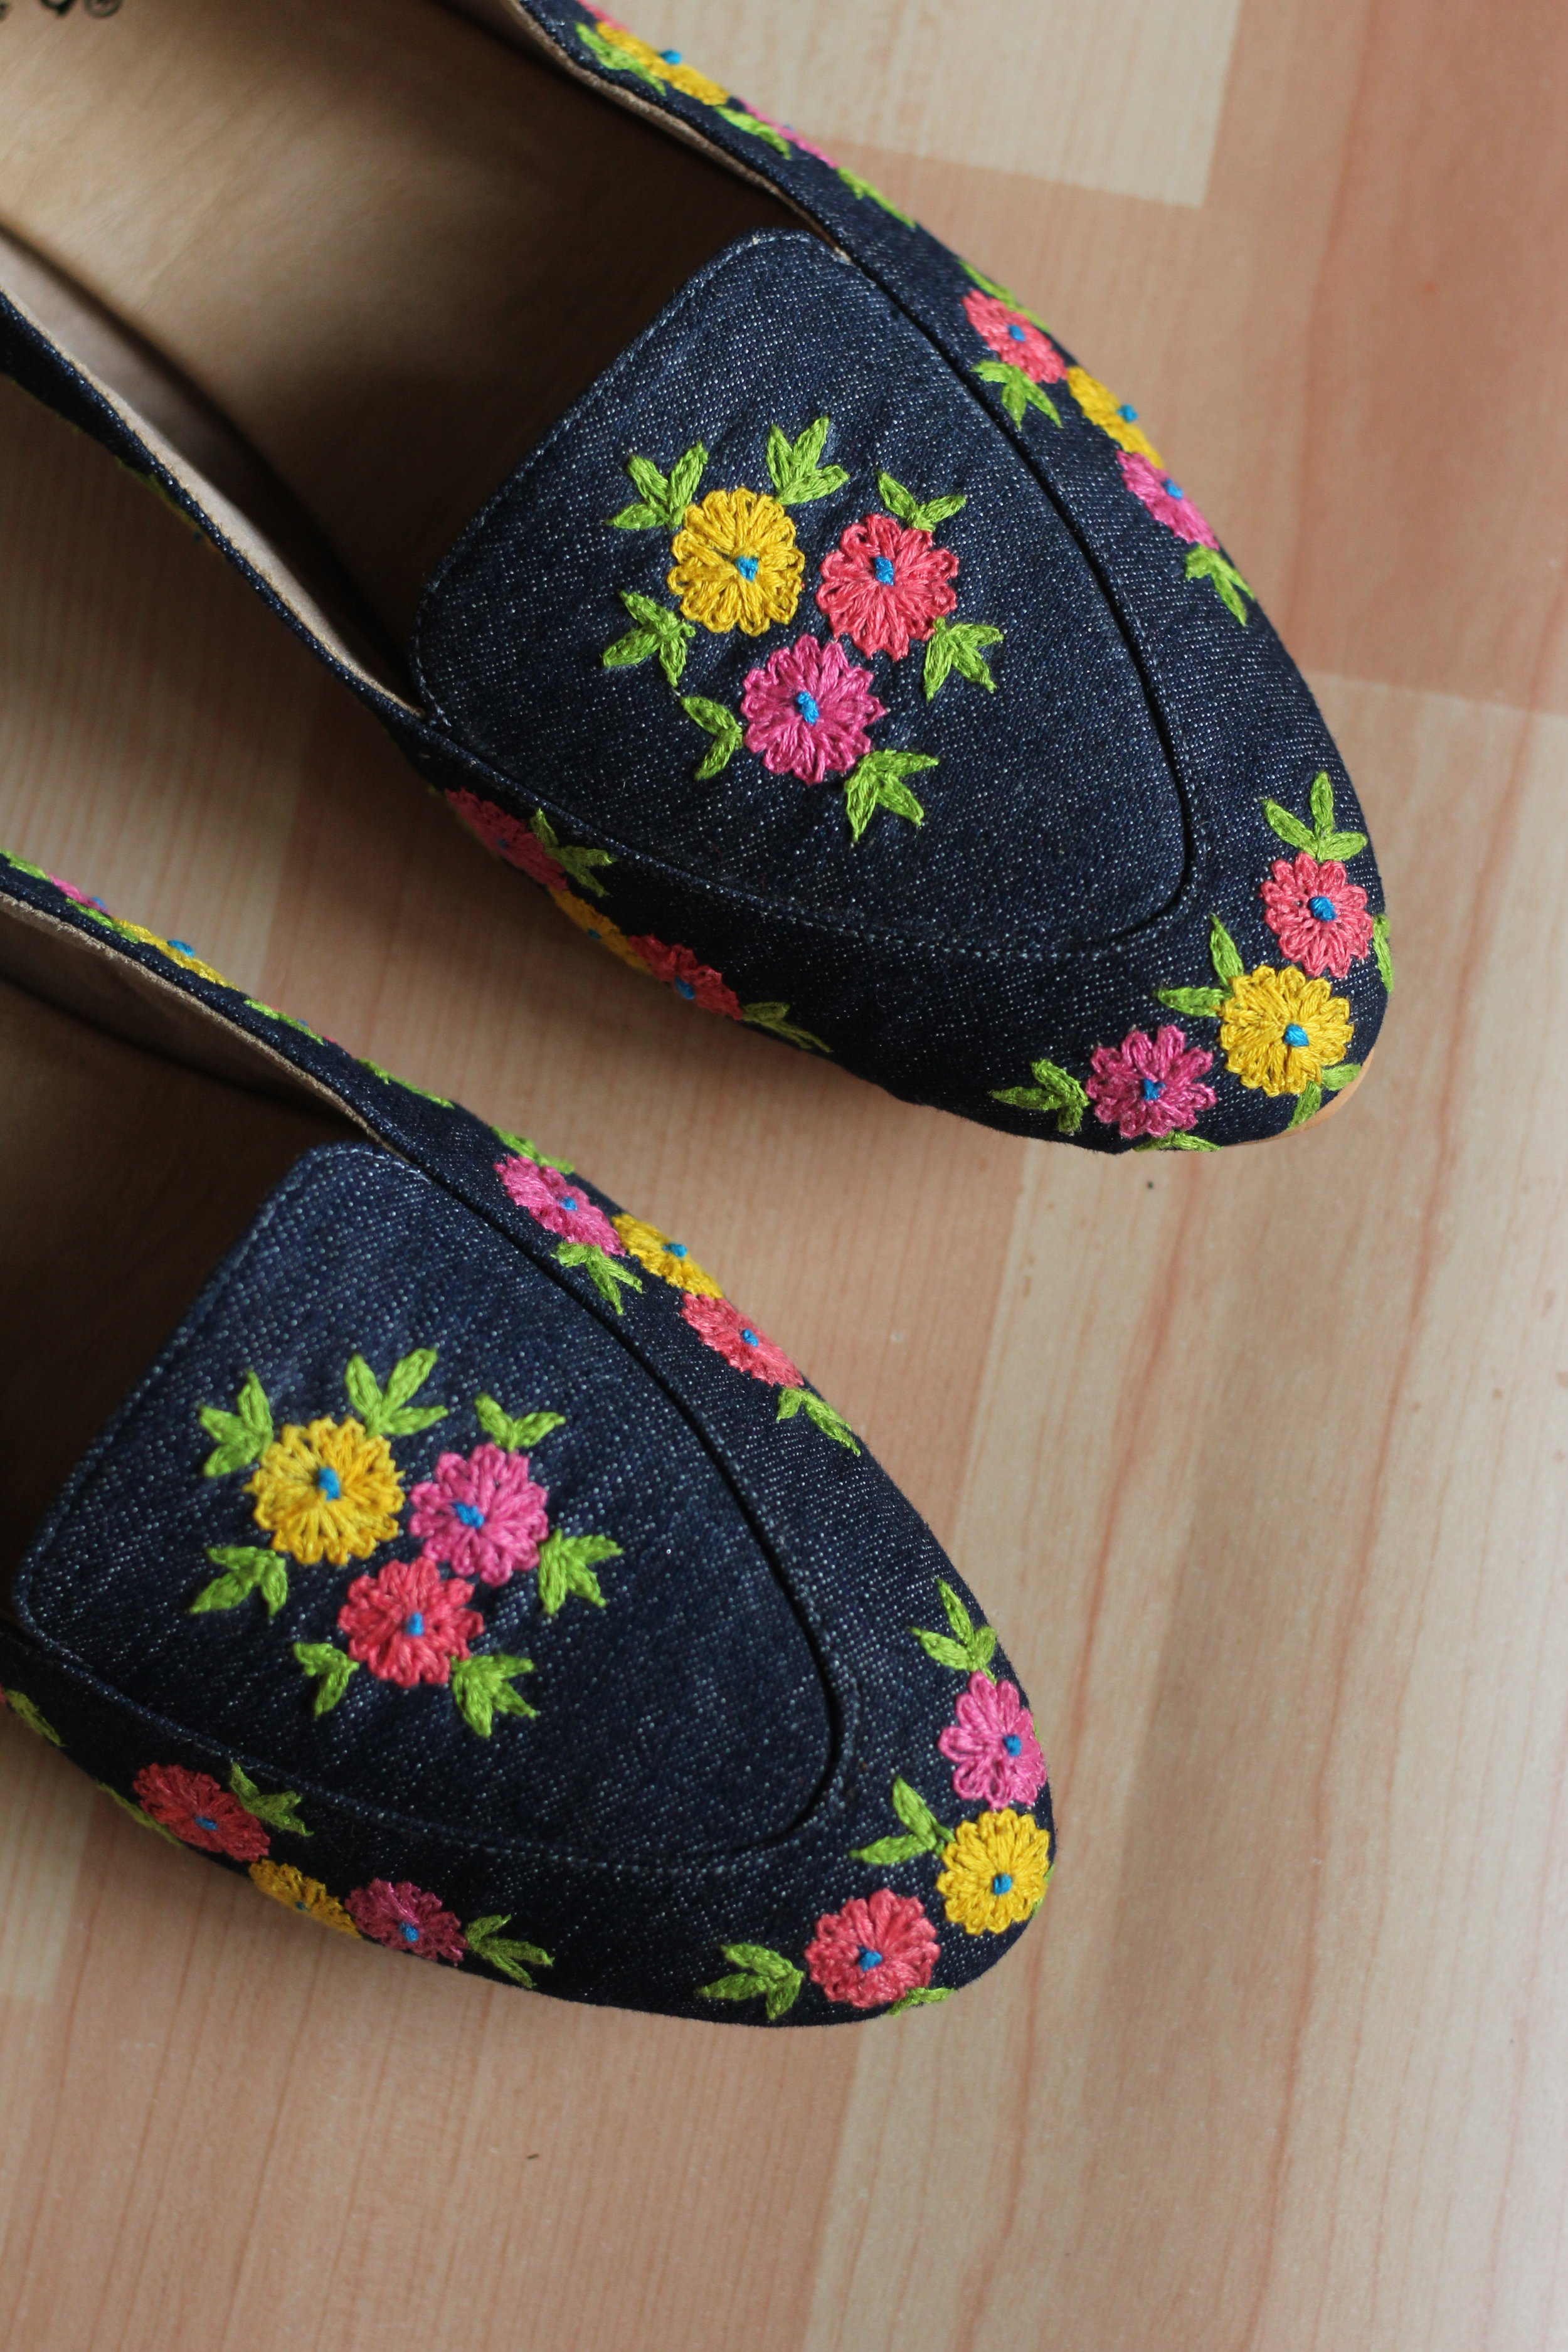 Flower Bloom - It's okay to be a little obsessed with shoes and ones with blooming flowers on denim base makes it a perfect pair.